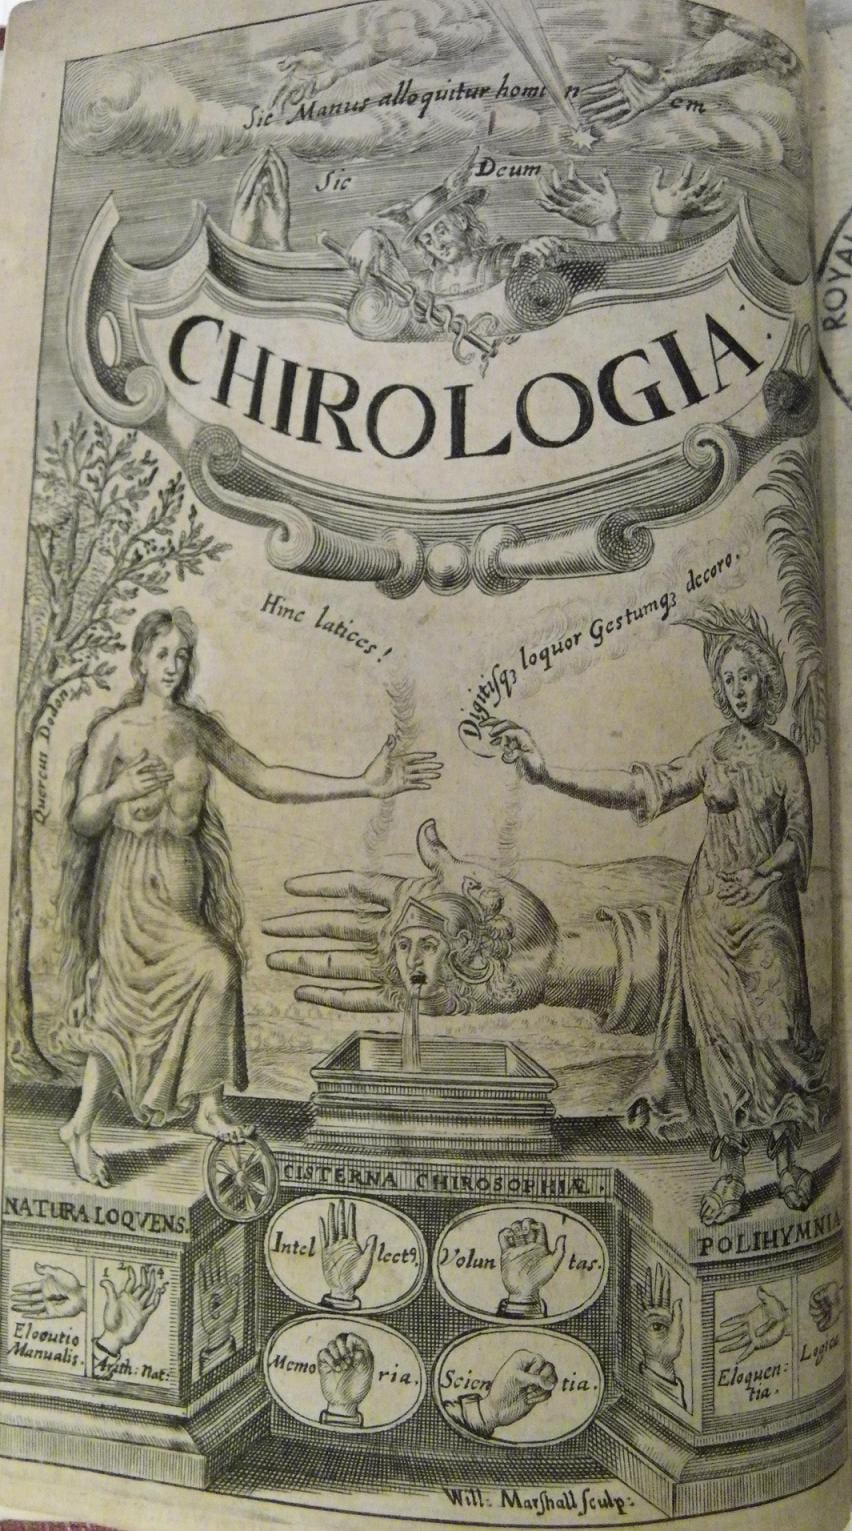 http://blogs.ucl.ac.uk/library-rnid/files/2012/02/Chirologia-frontispiece-smaller.jpg